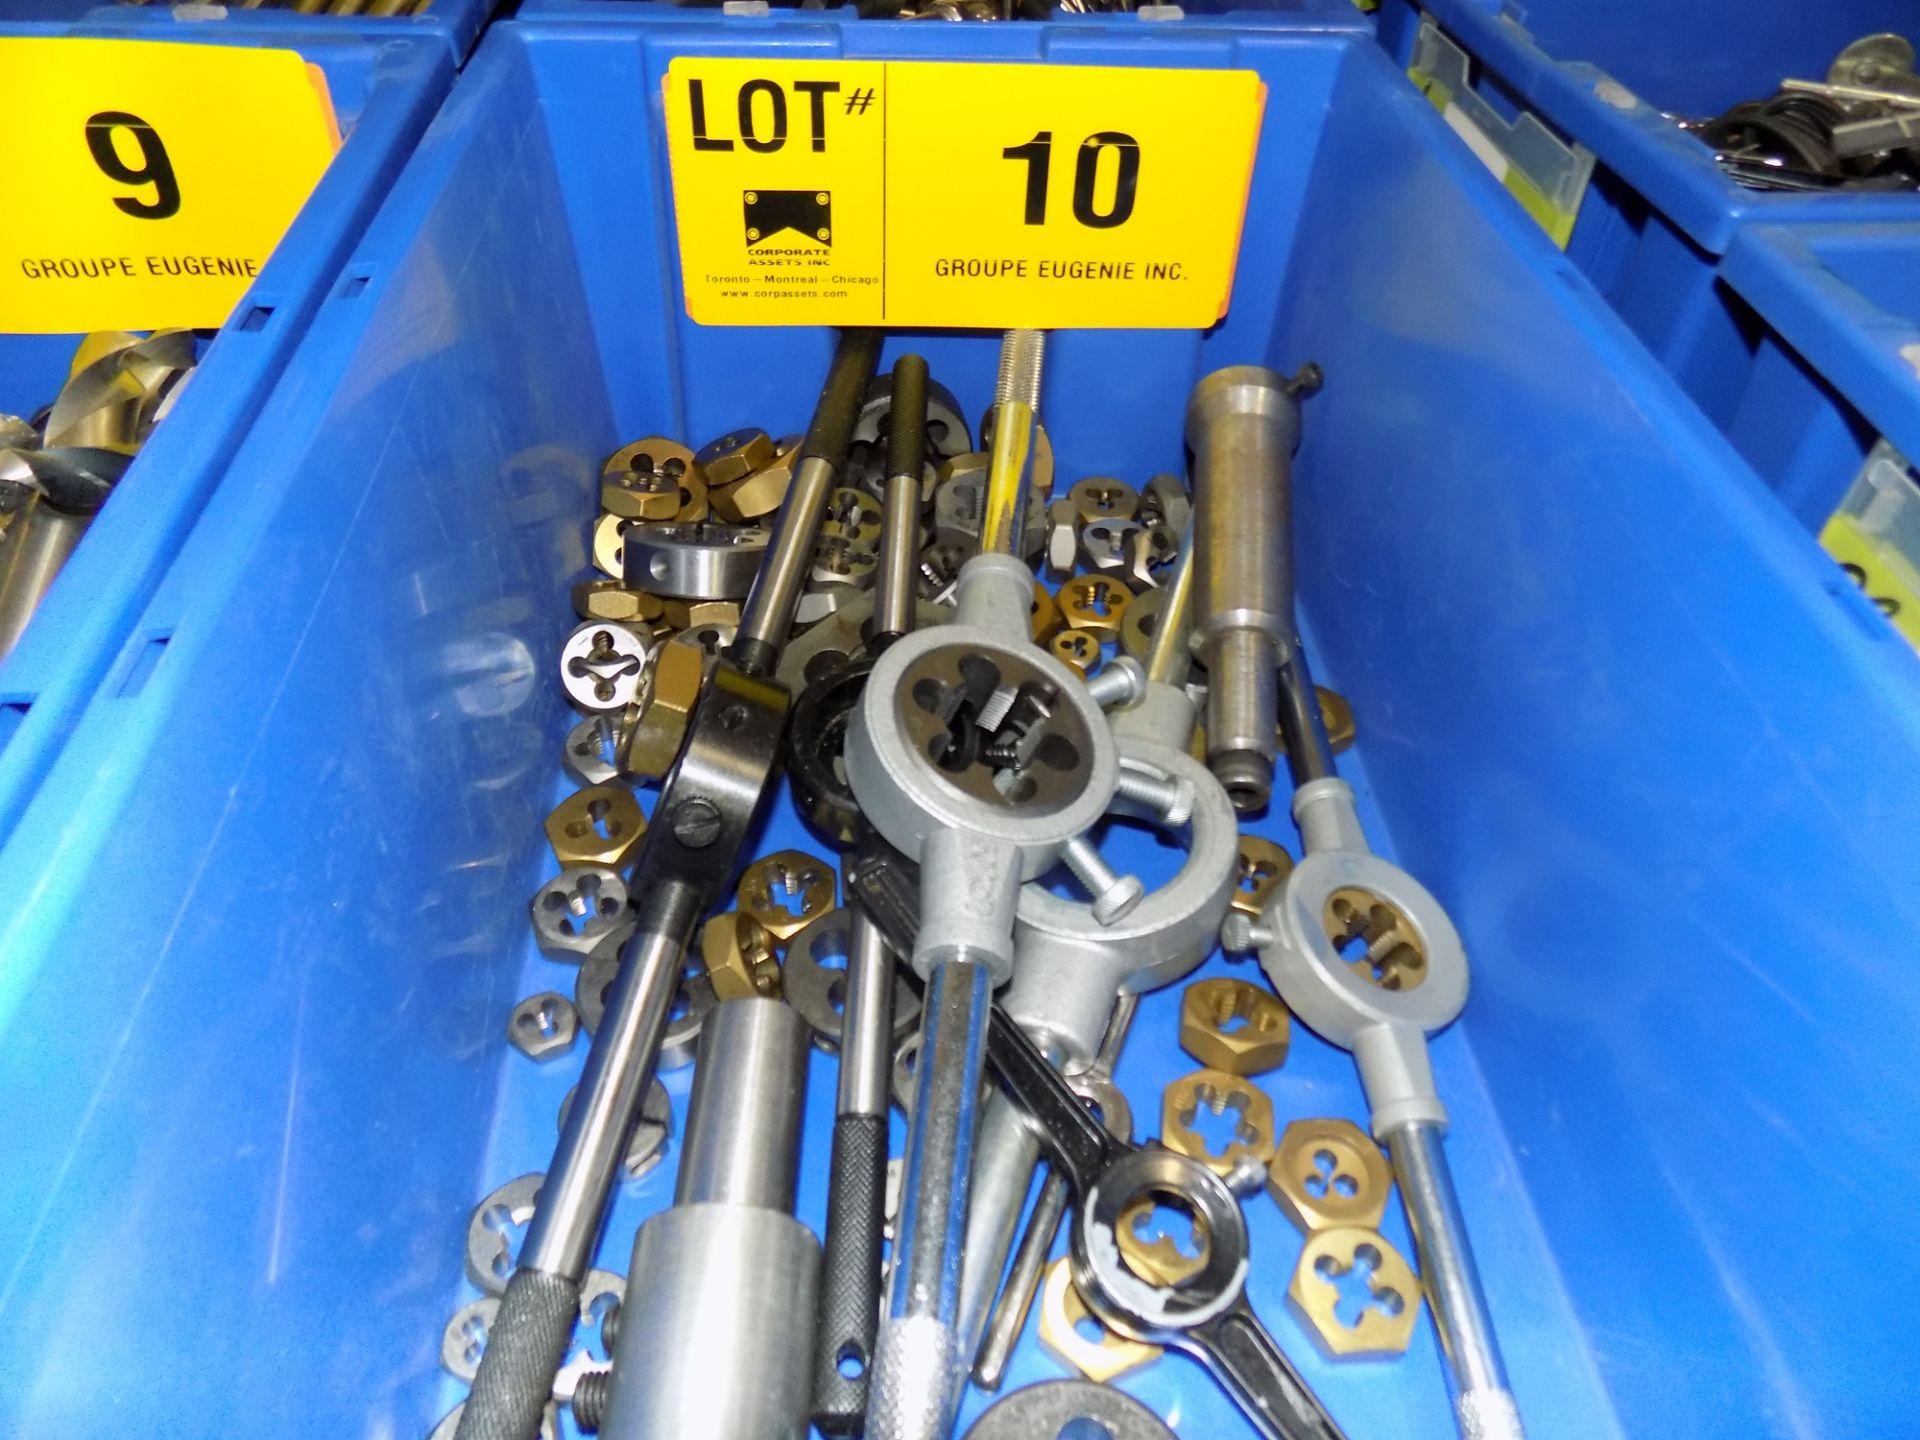 Lot 10 - LOT/ THREADING DIES WITH HOLDERS